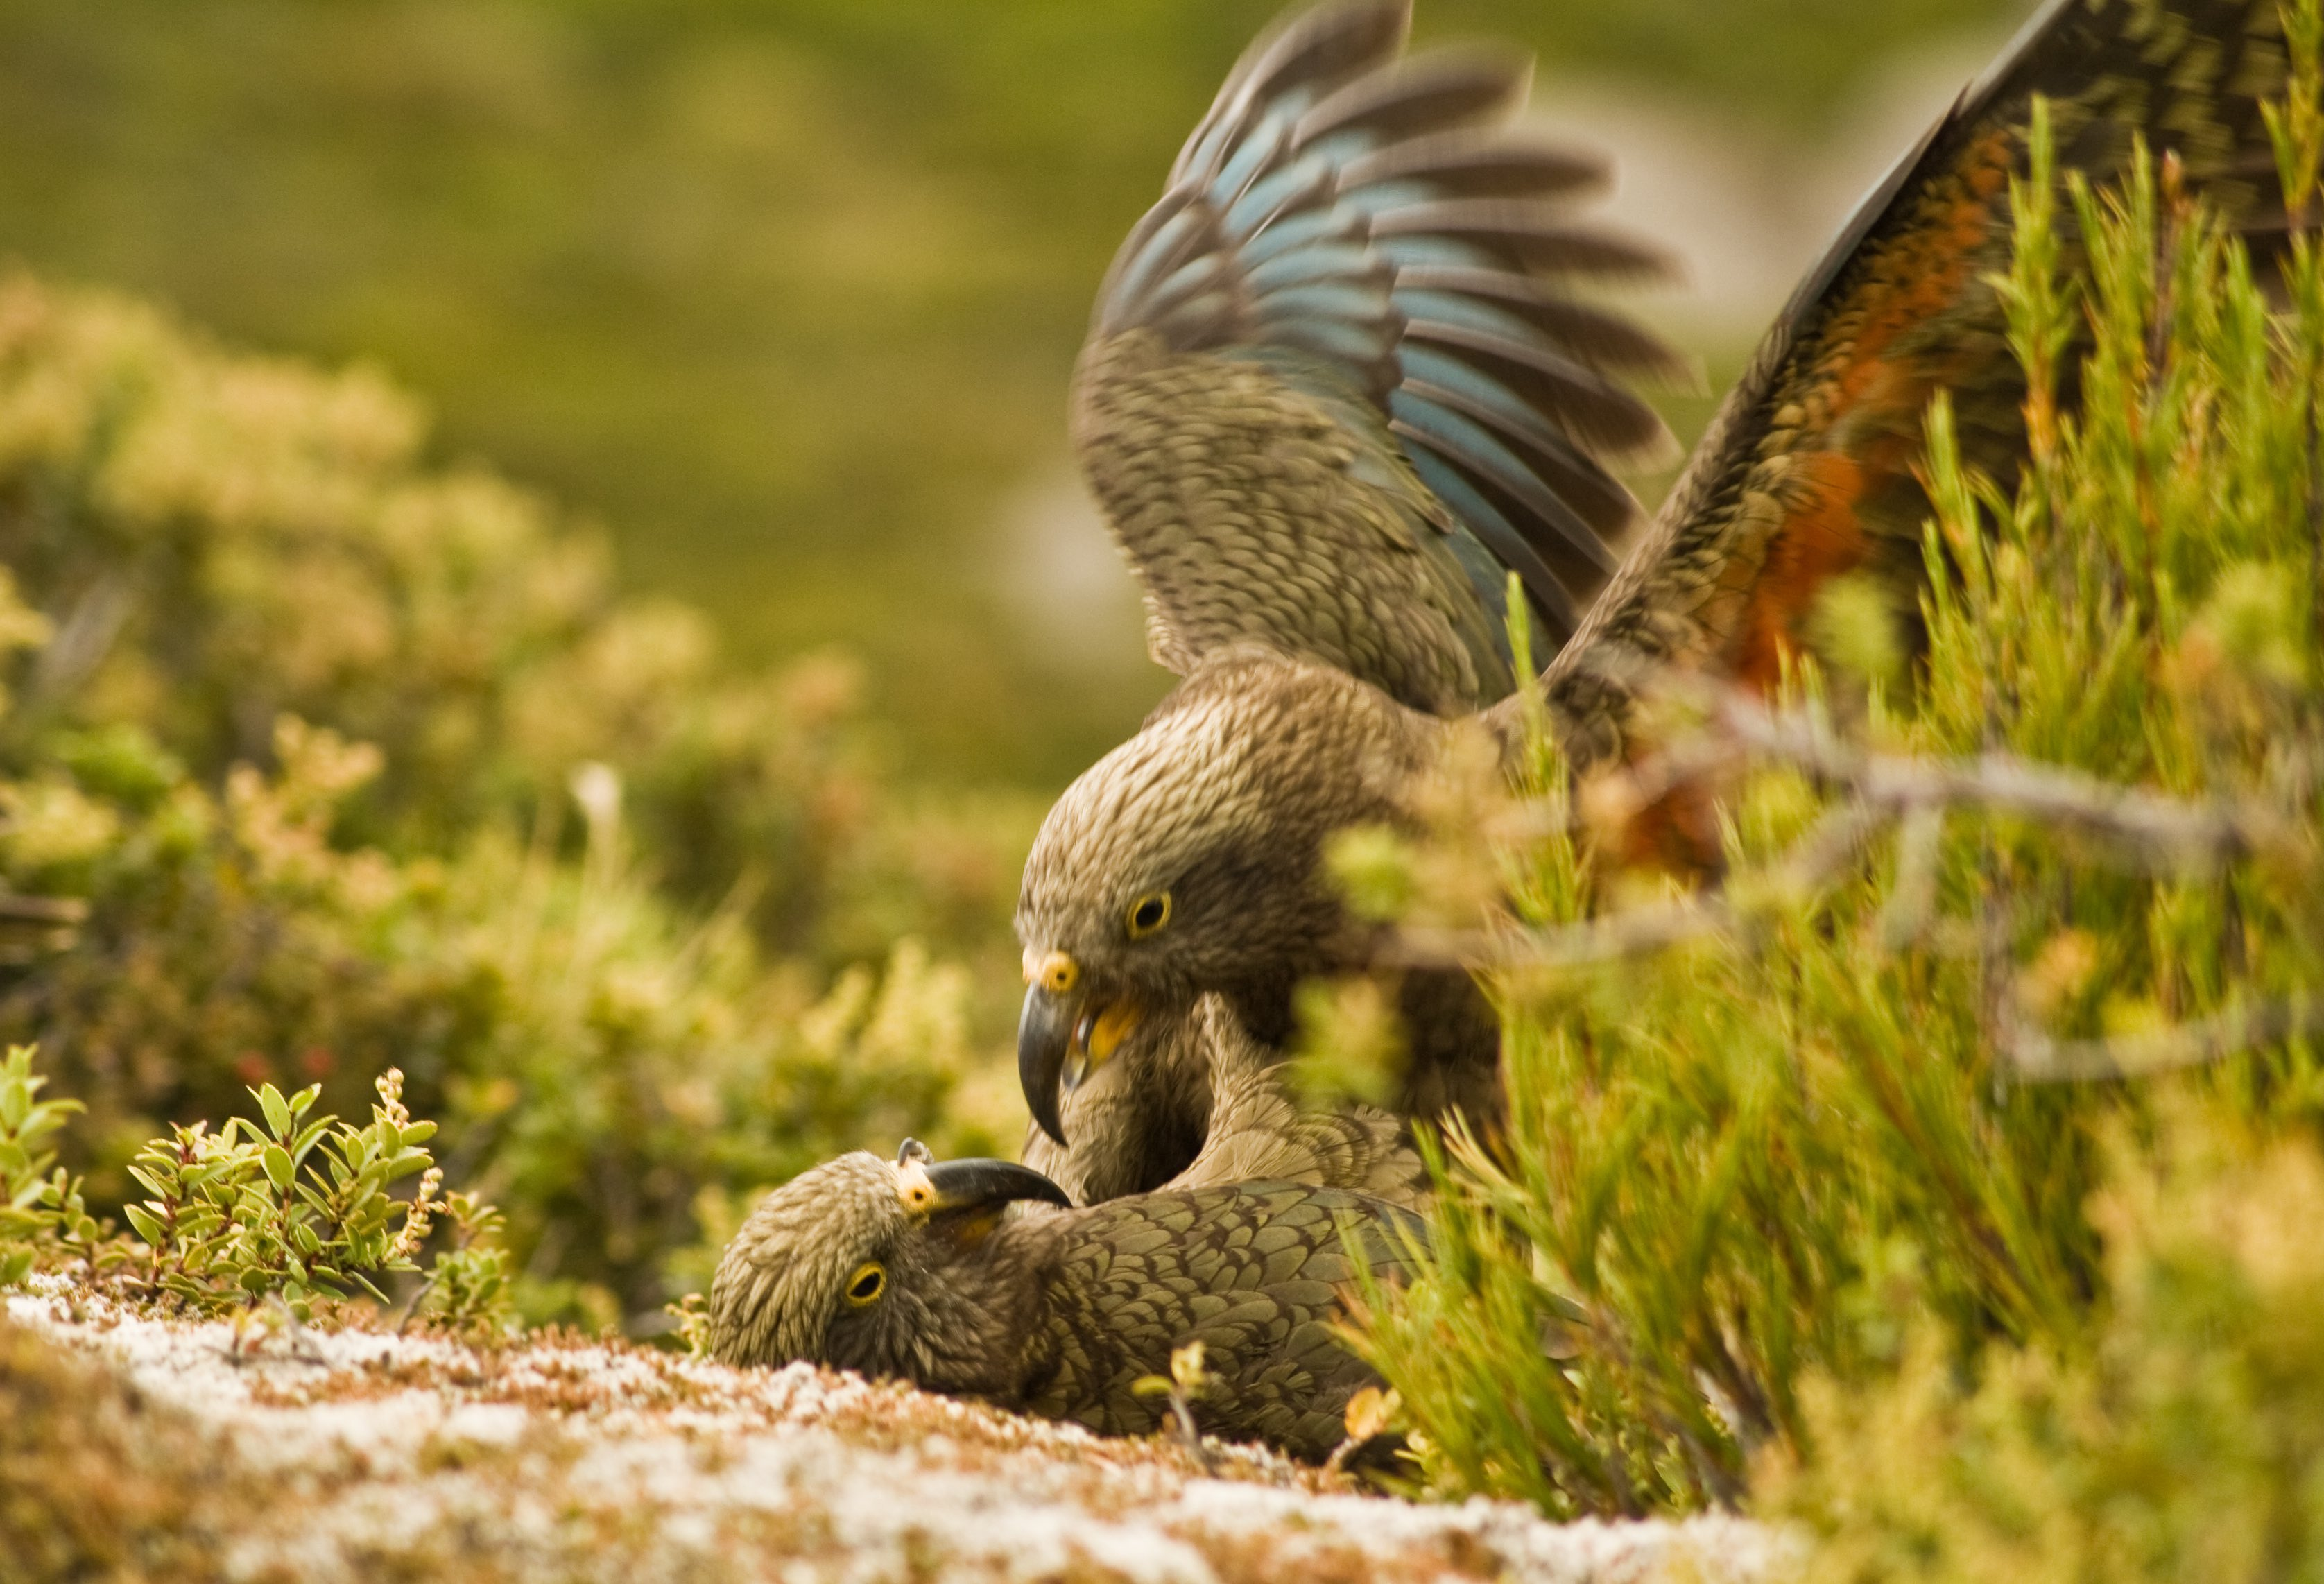 Kea at play. Credit: Raoul Schwing